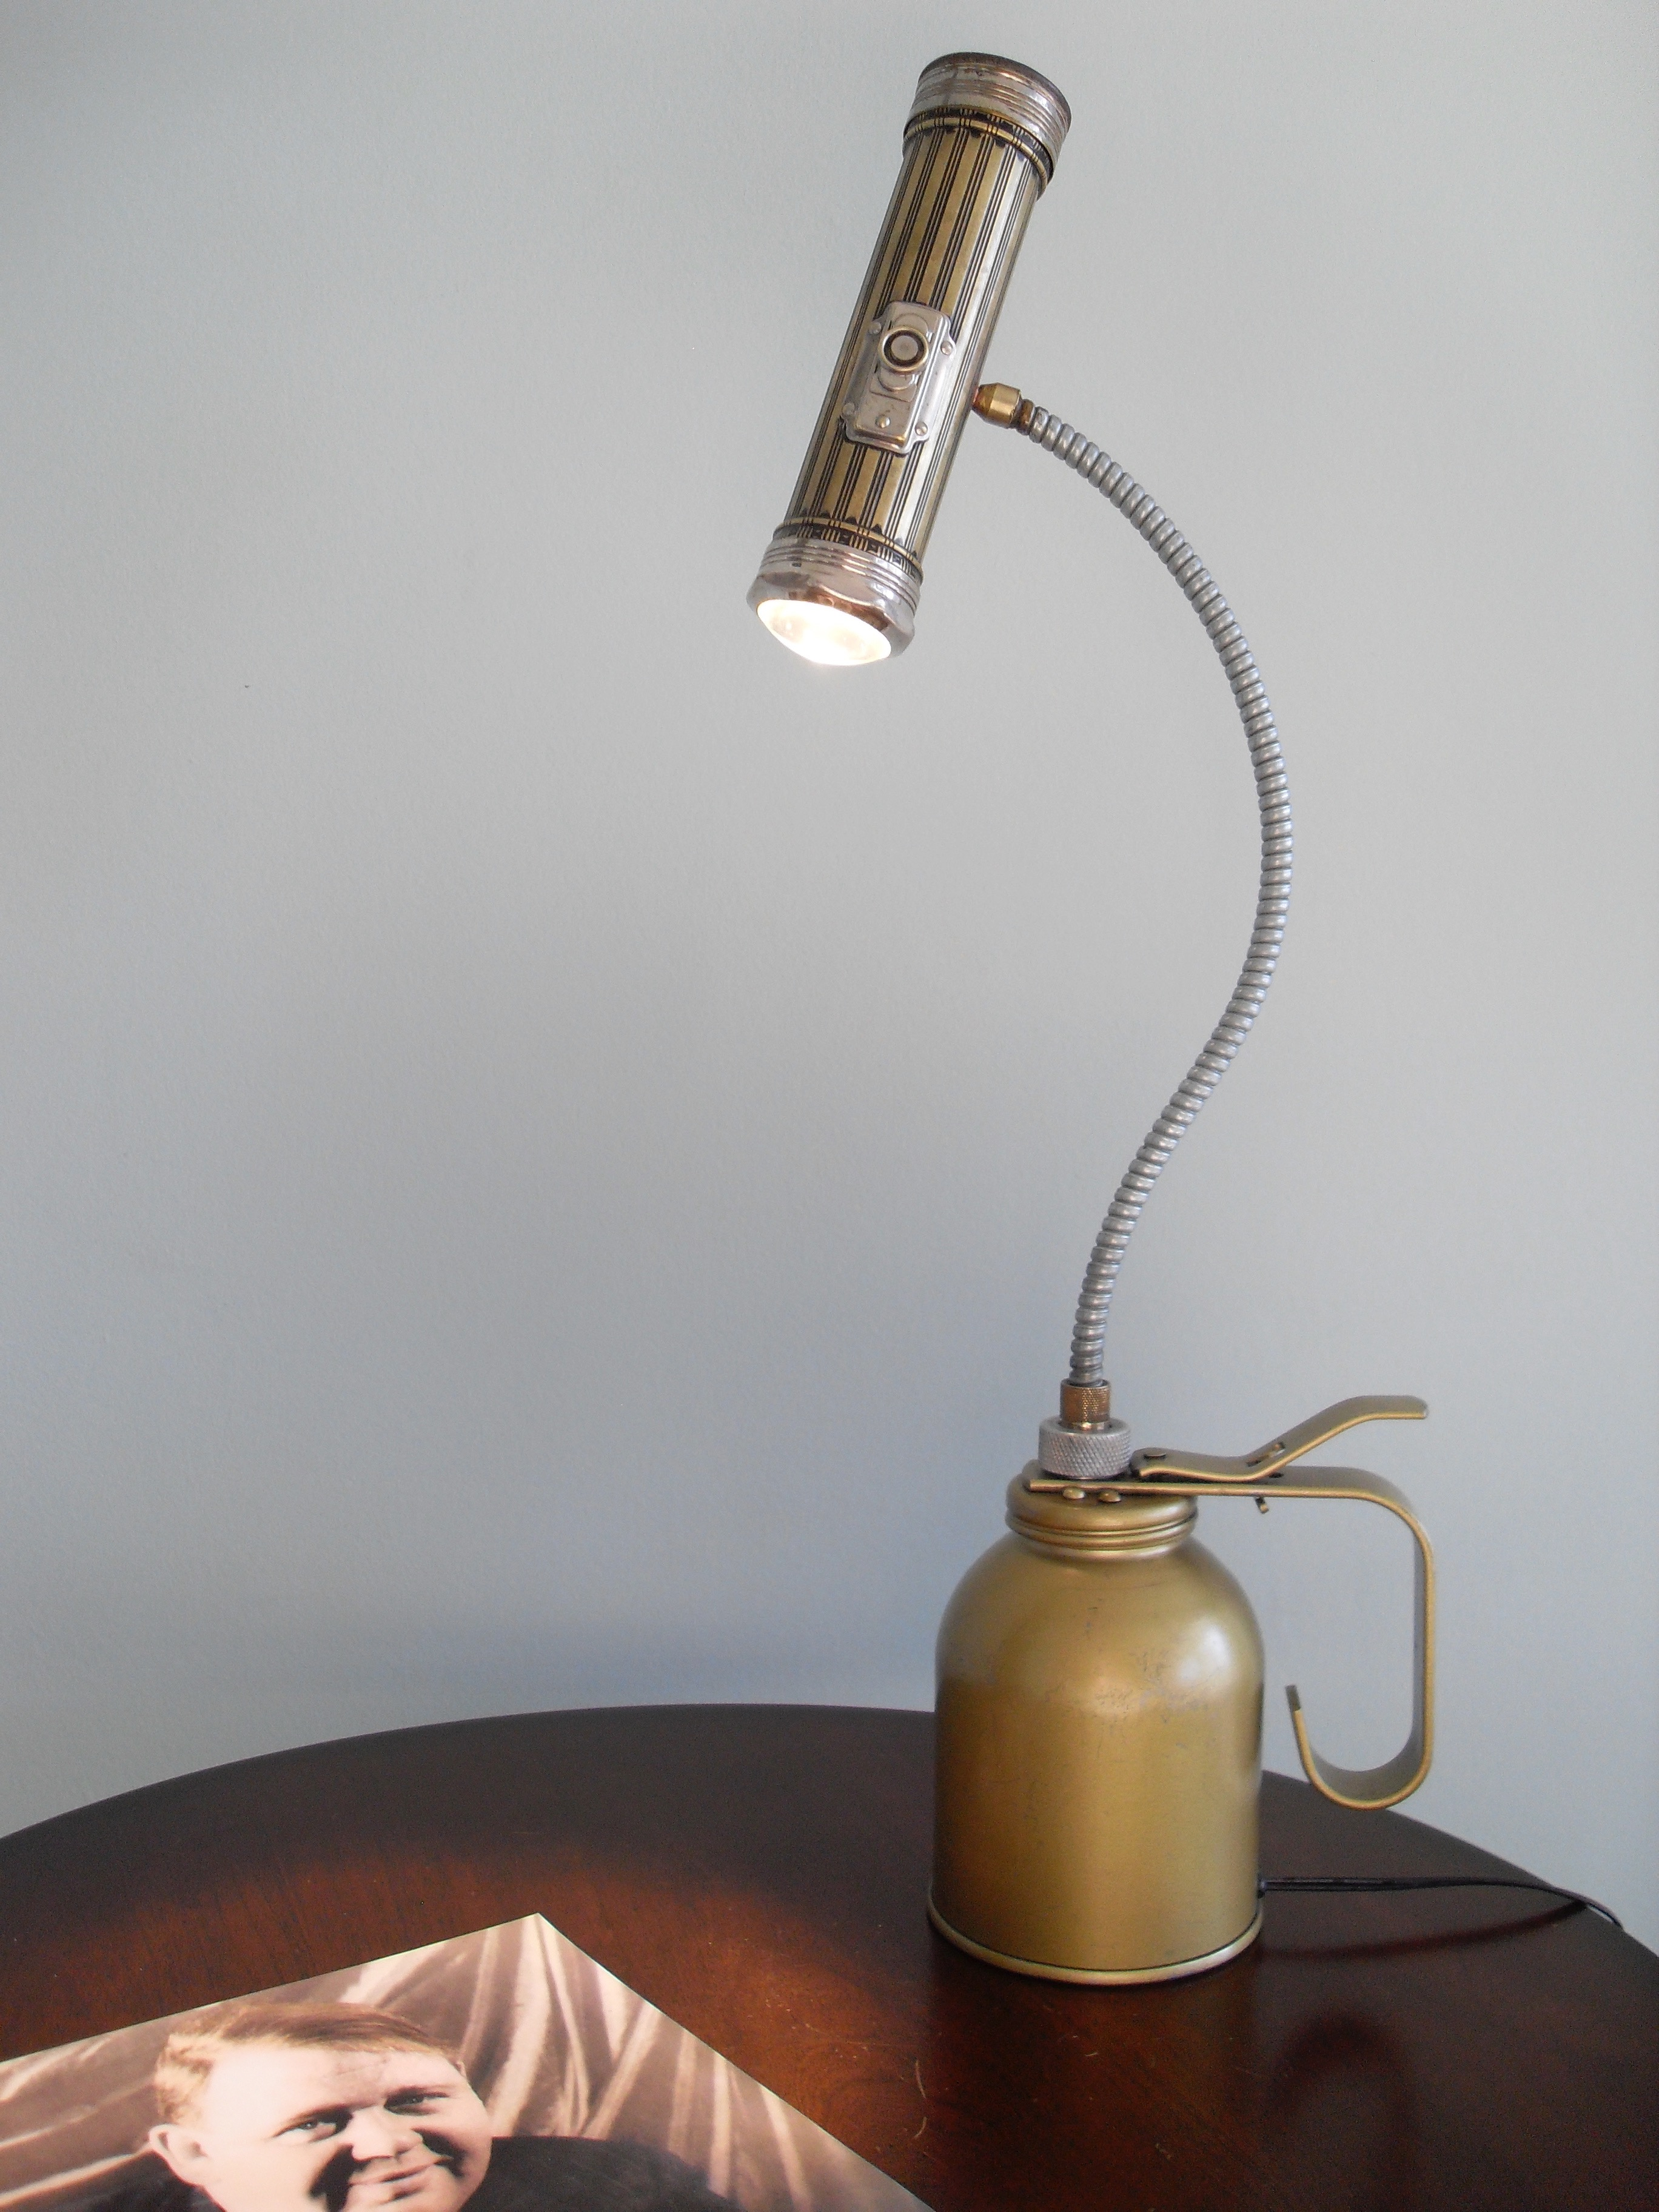 Vintage Flashlight-Oilcan Light